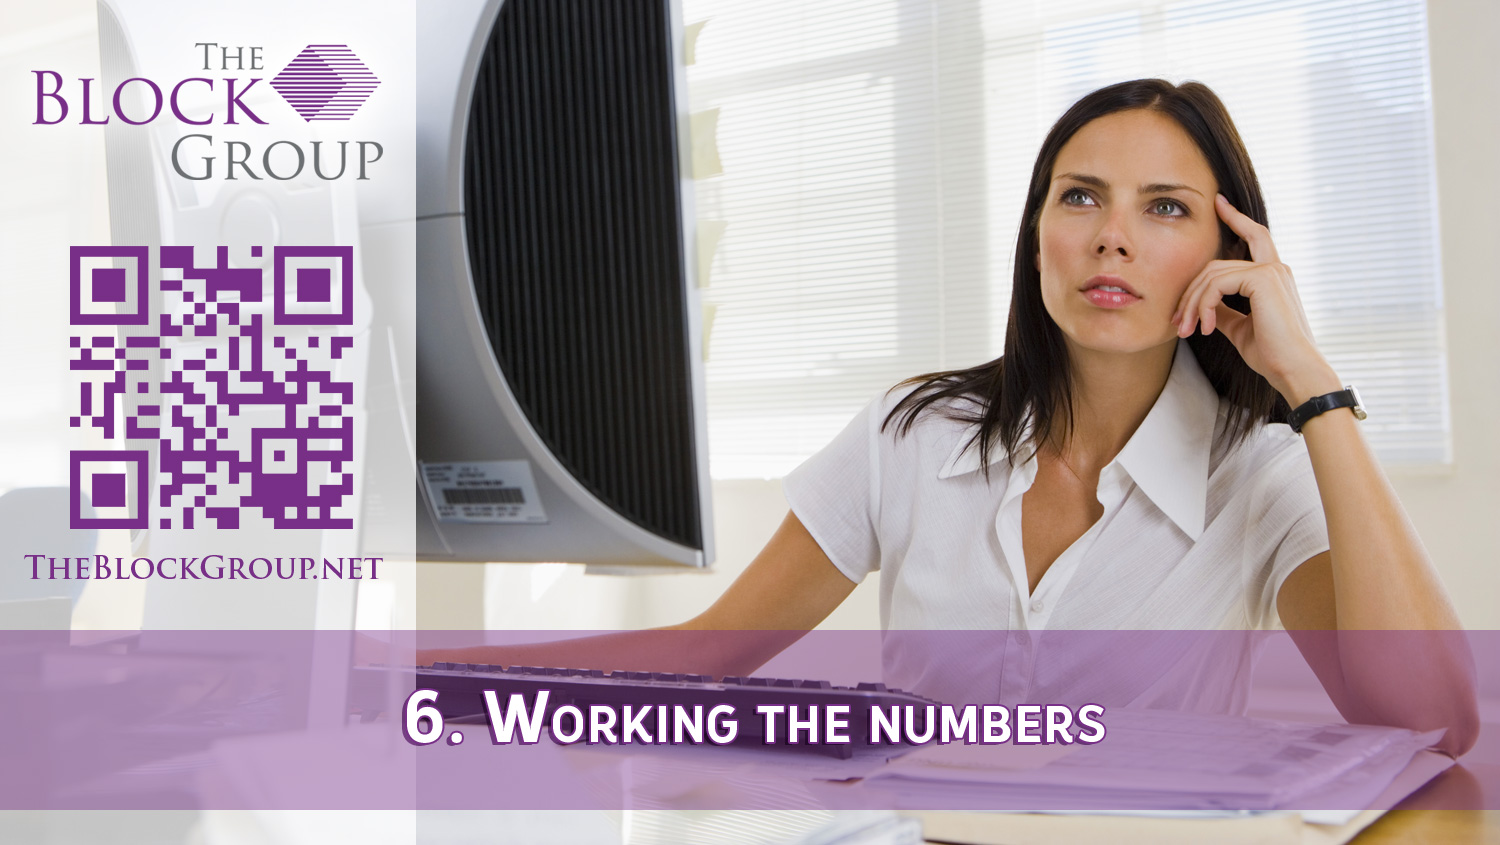 006.-Working-the-numbers